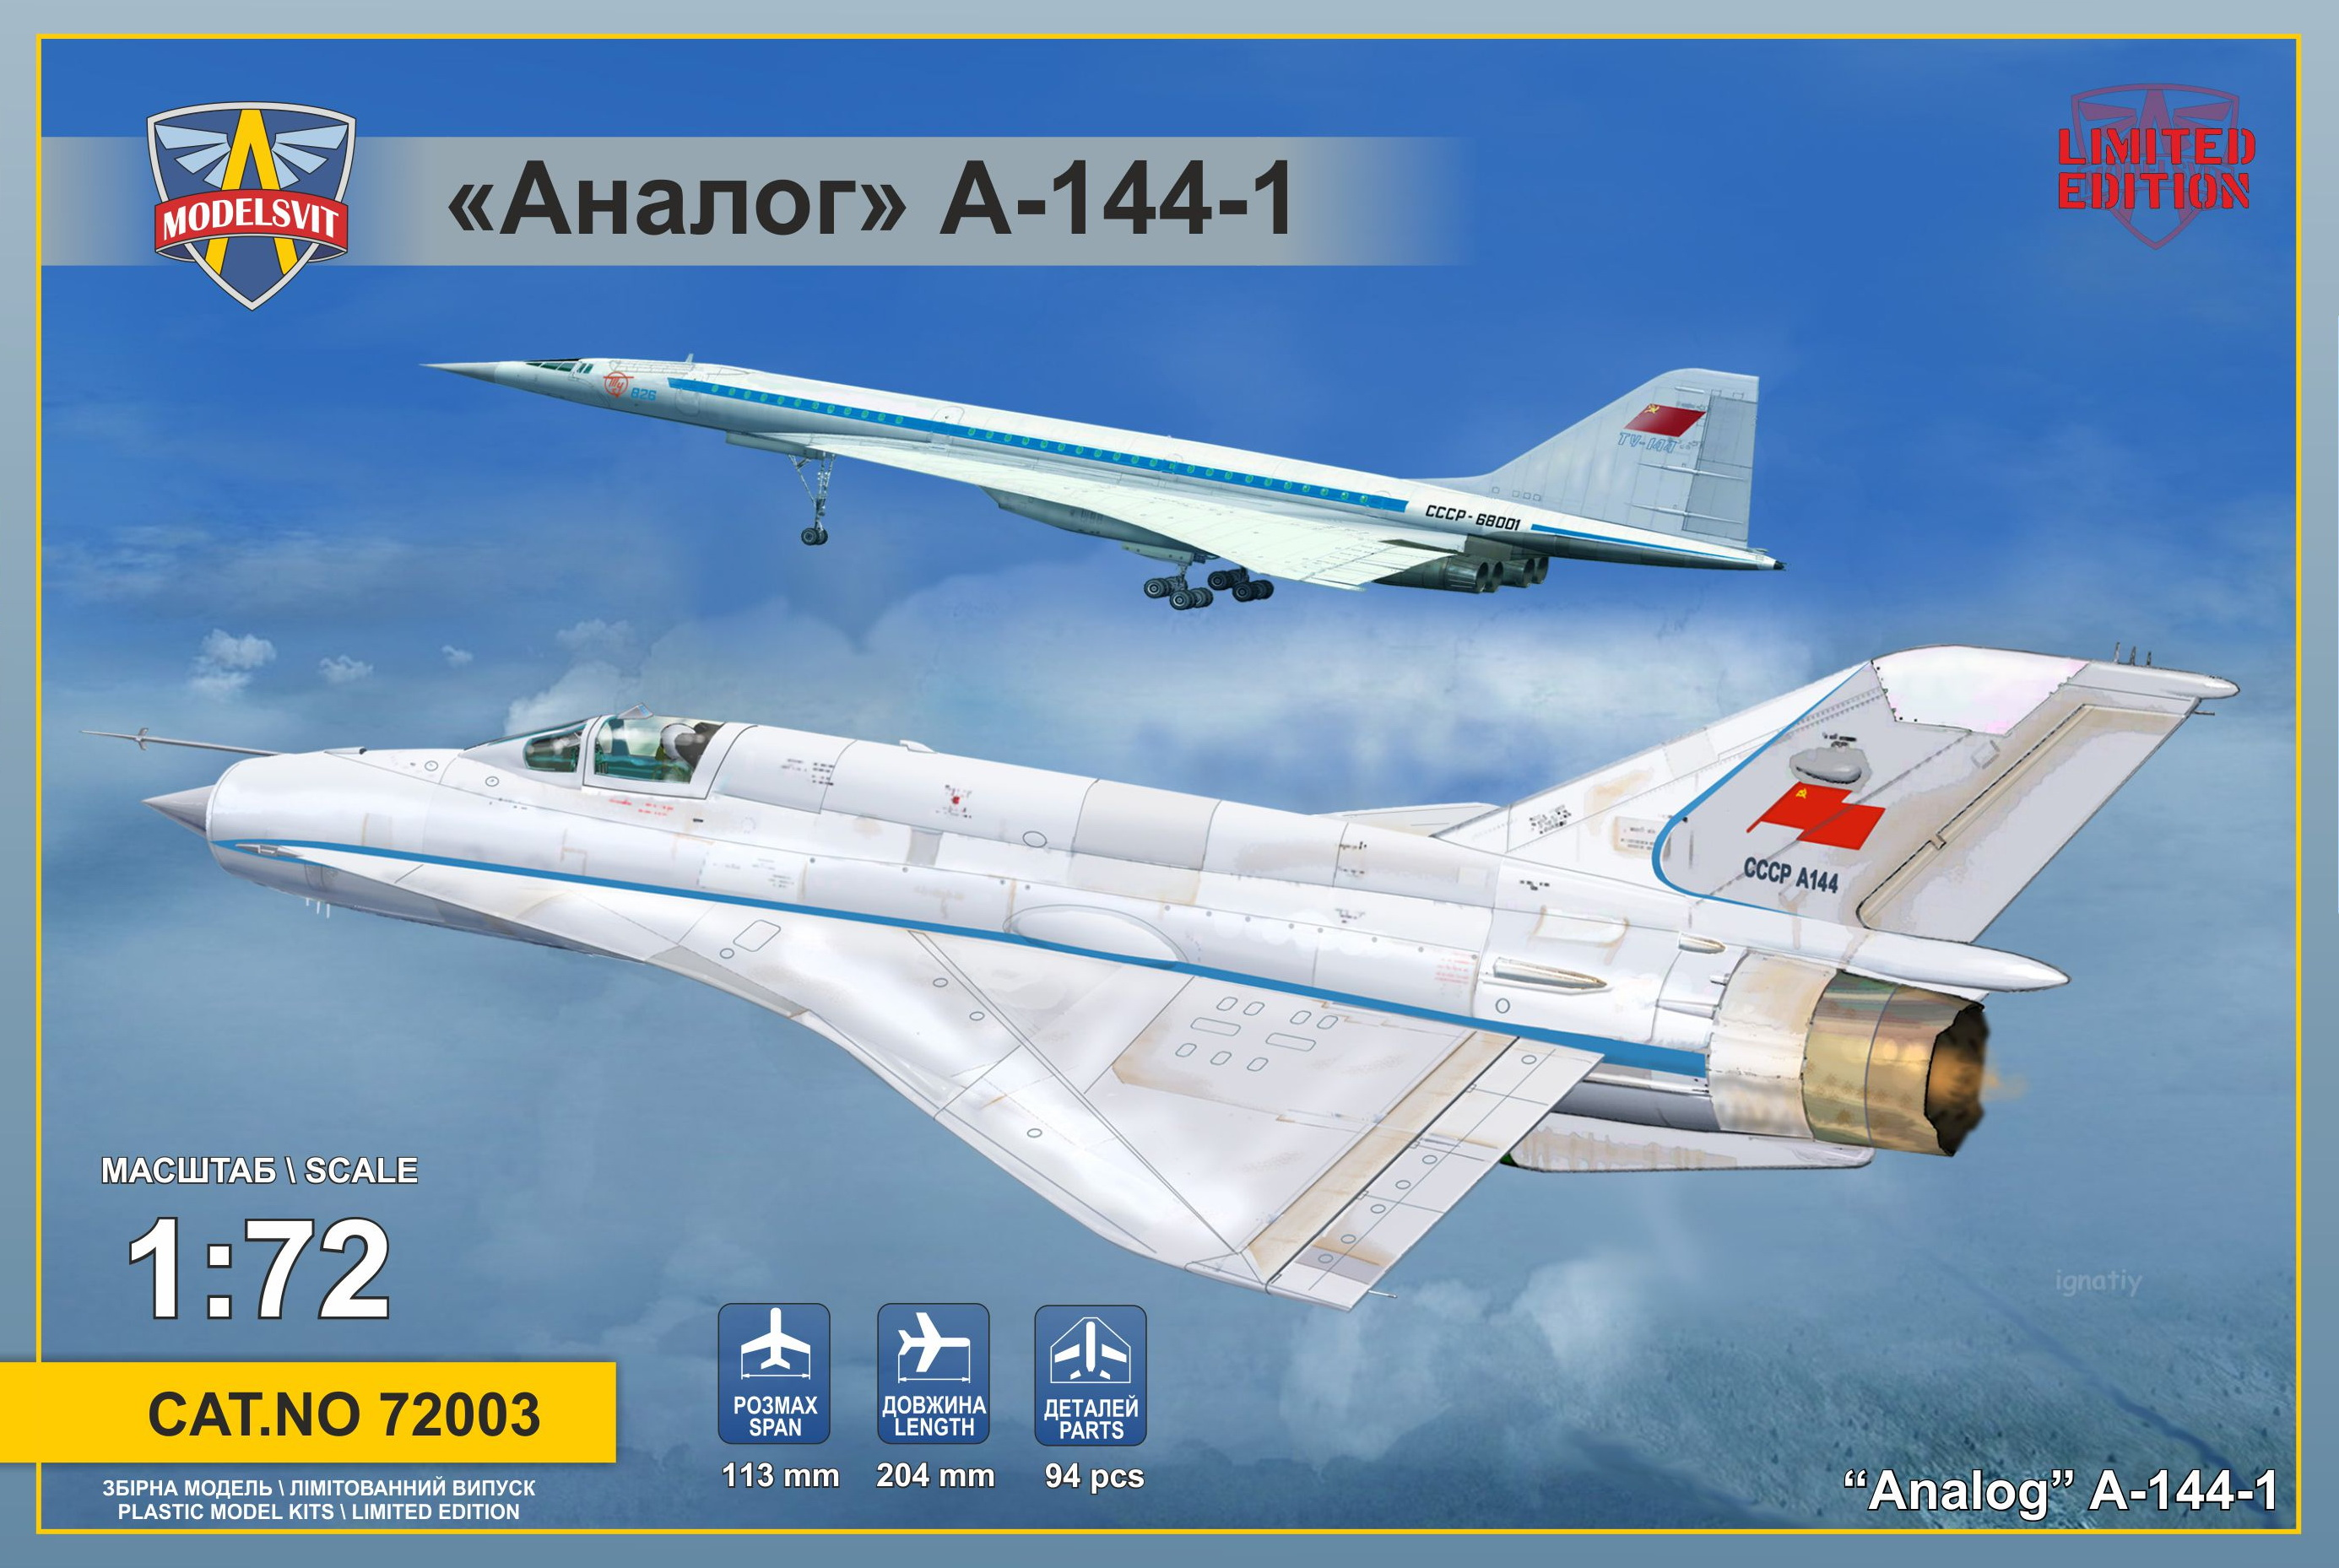 Analog A-144-1 (MiG21 prototype #1) - ModelSvit official web-shop